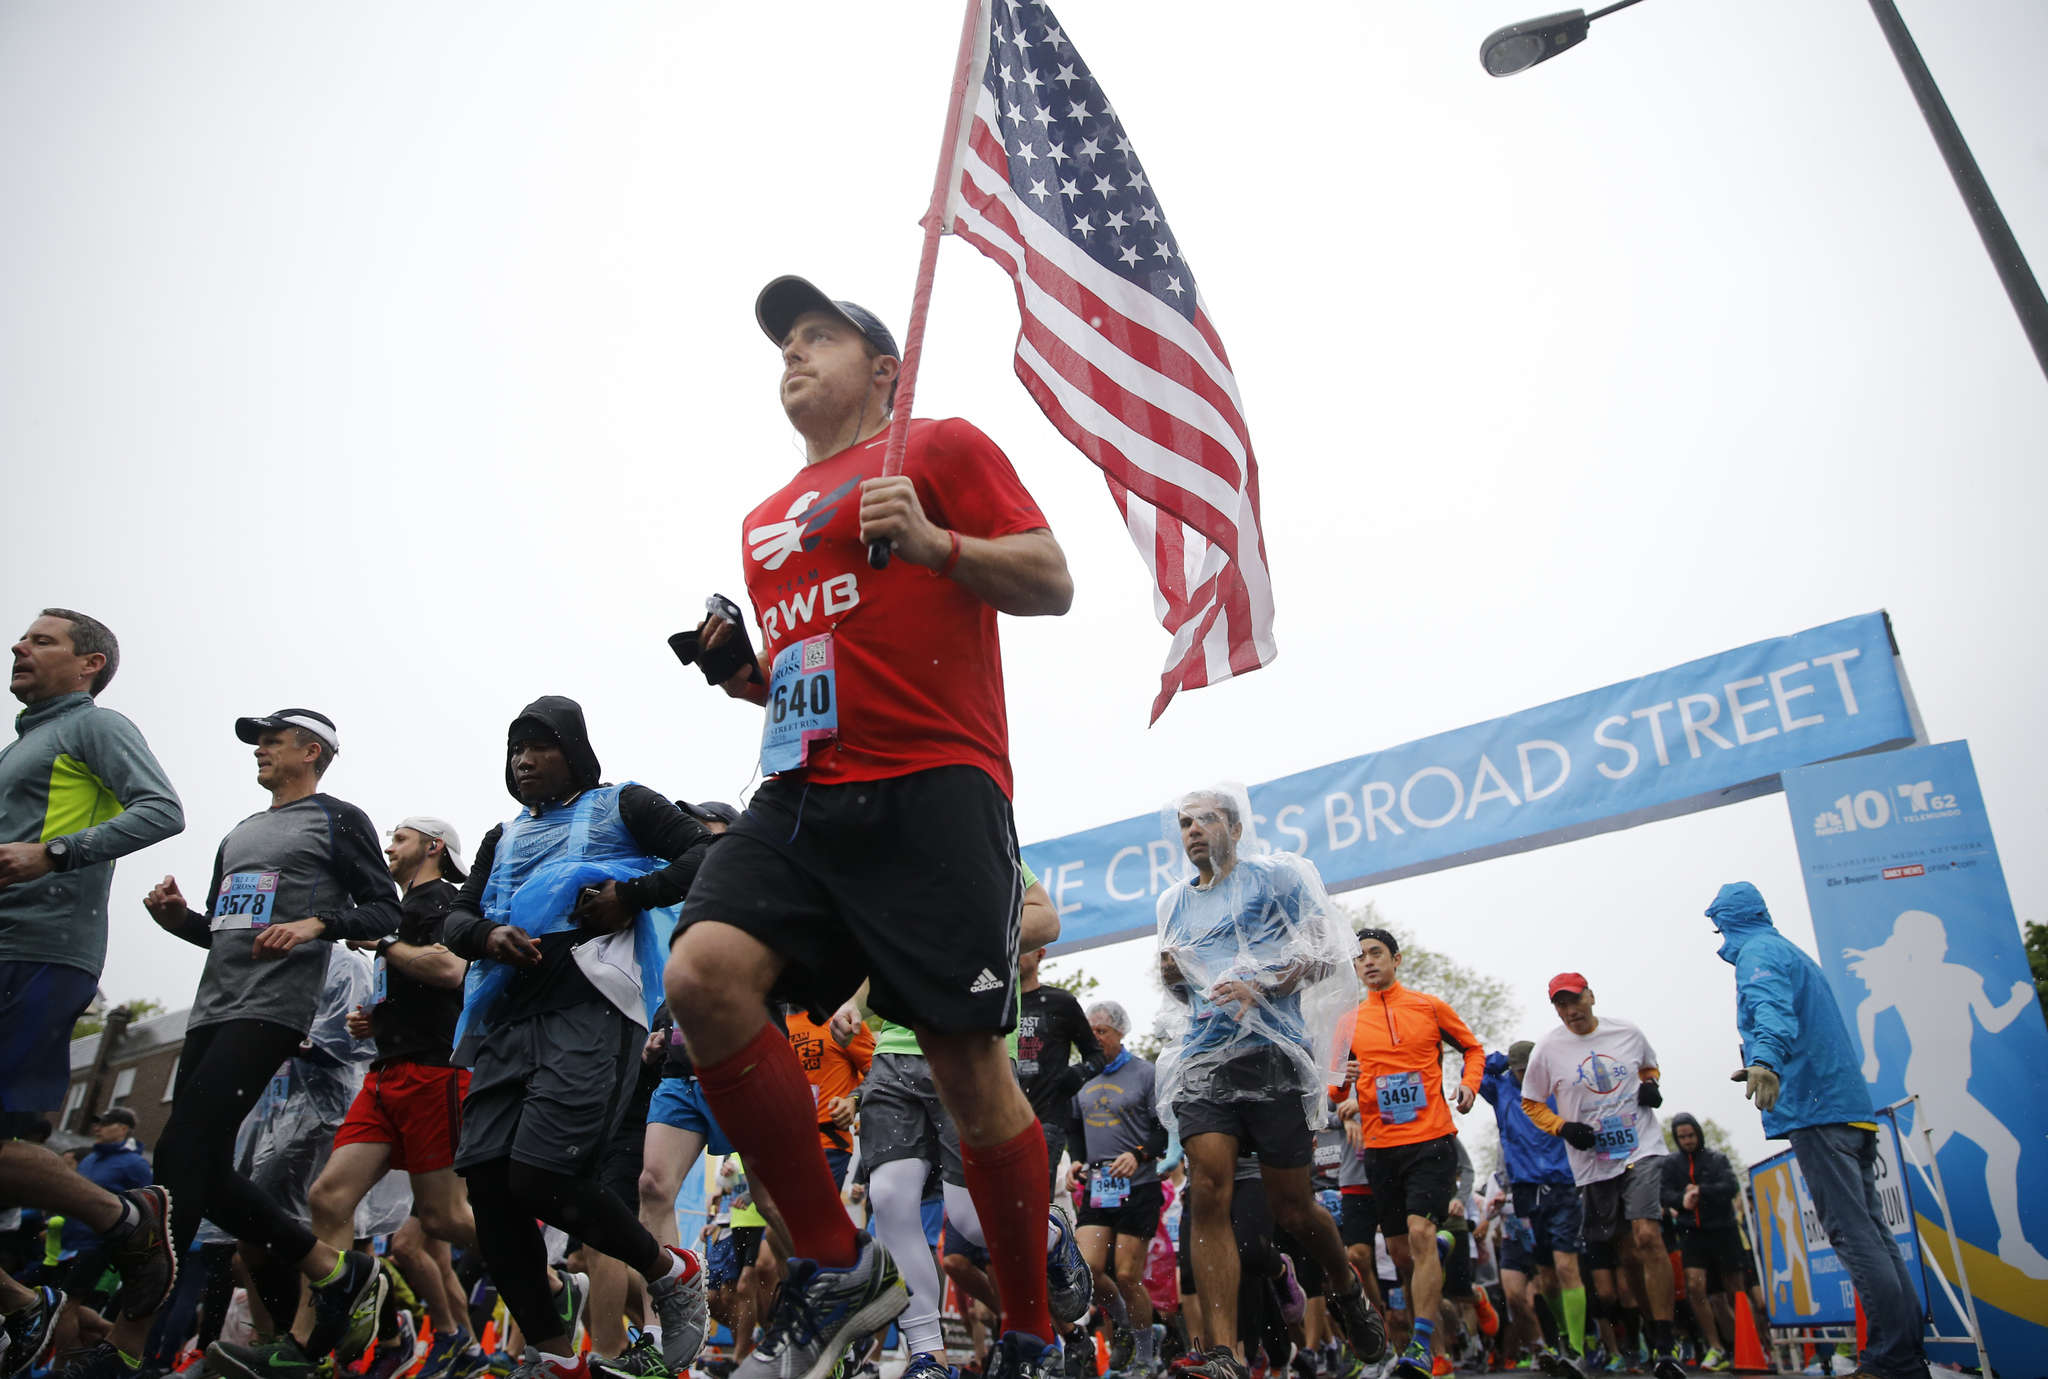 Ali Buchalter of New York City took on the 10-mile Blue Cross Broad Street Run while carrying the flag on Sunday. Some of the almost 40,000 participants said they were running in memory of others.